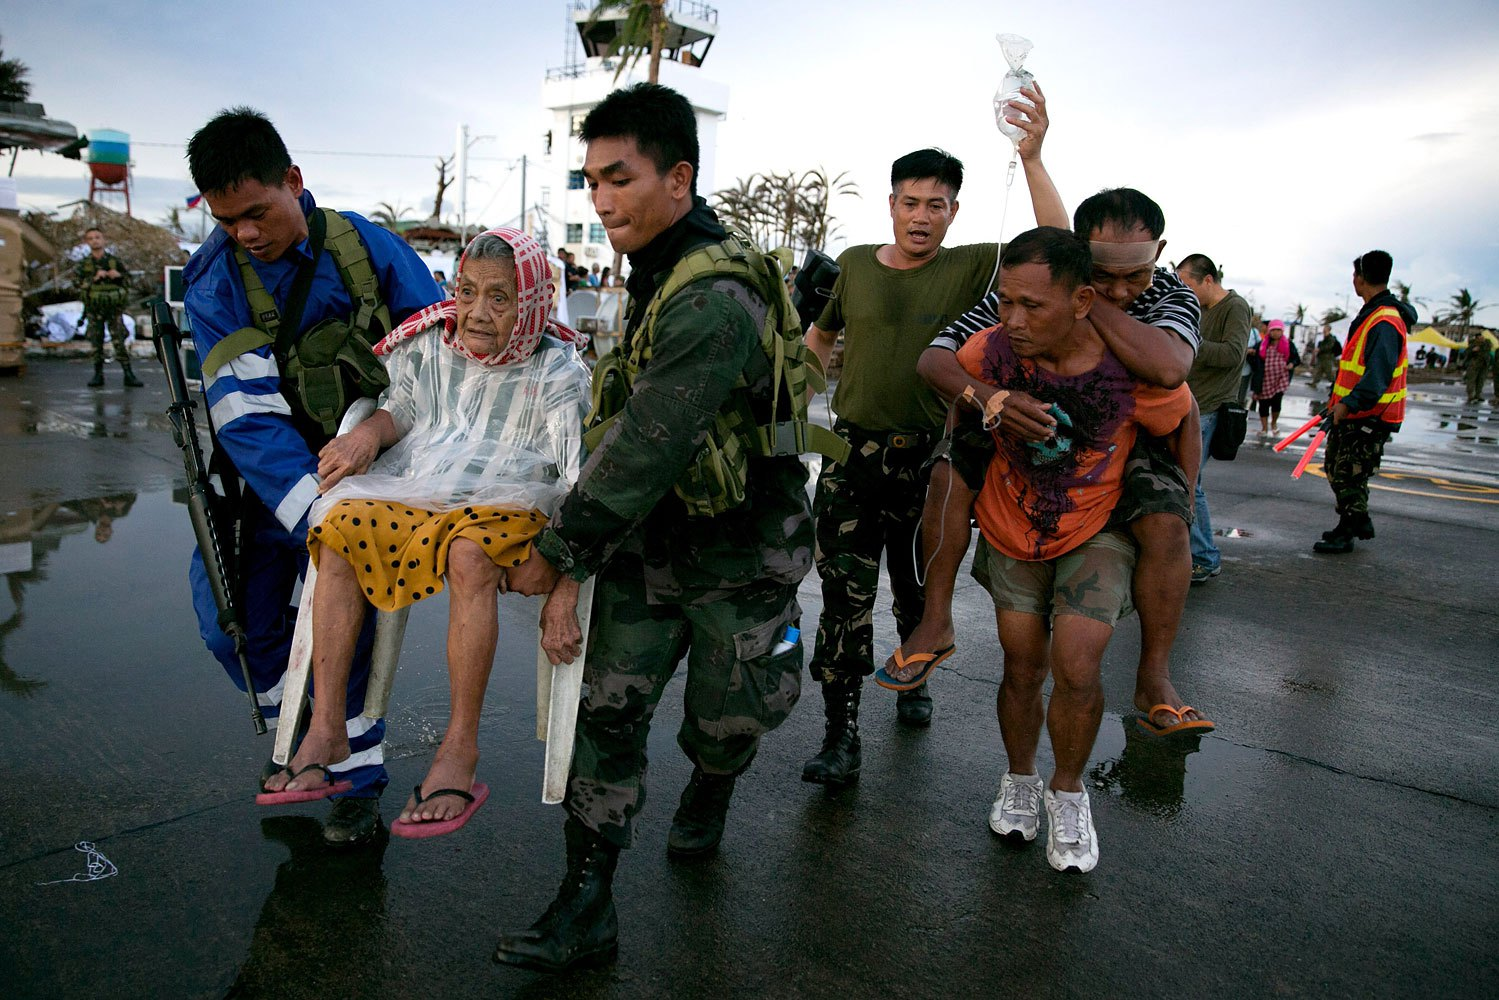 An elderly lady and an injured man are carried to a waiting C130 aircraft during the evacuation of hundreds of survivors of Typhoon Haiyan on November 12, 2013 in Tacloban, Philippines.